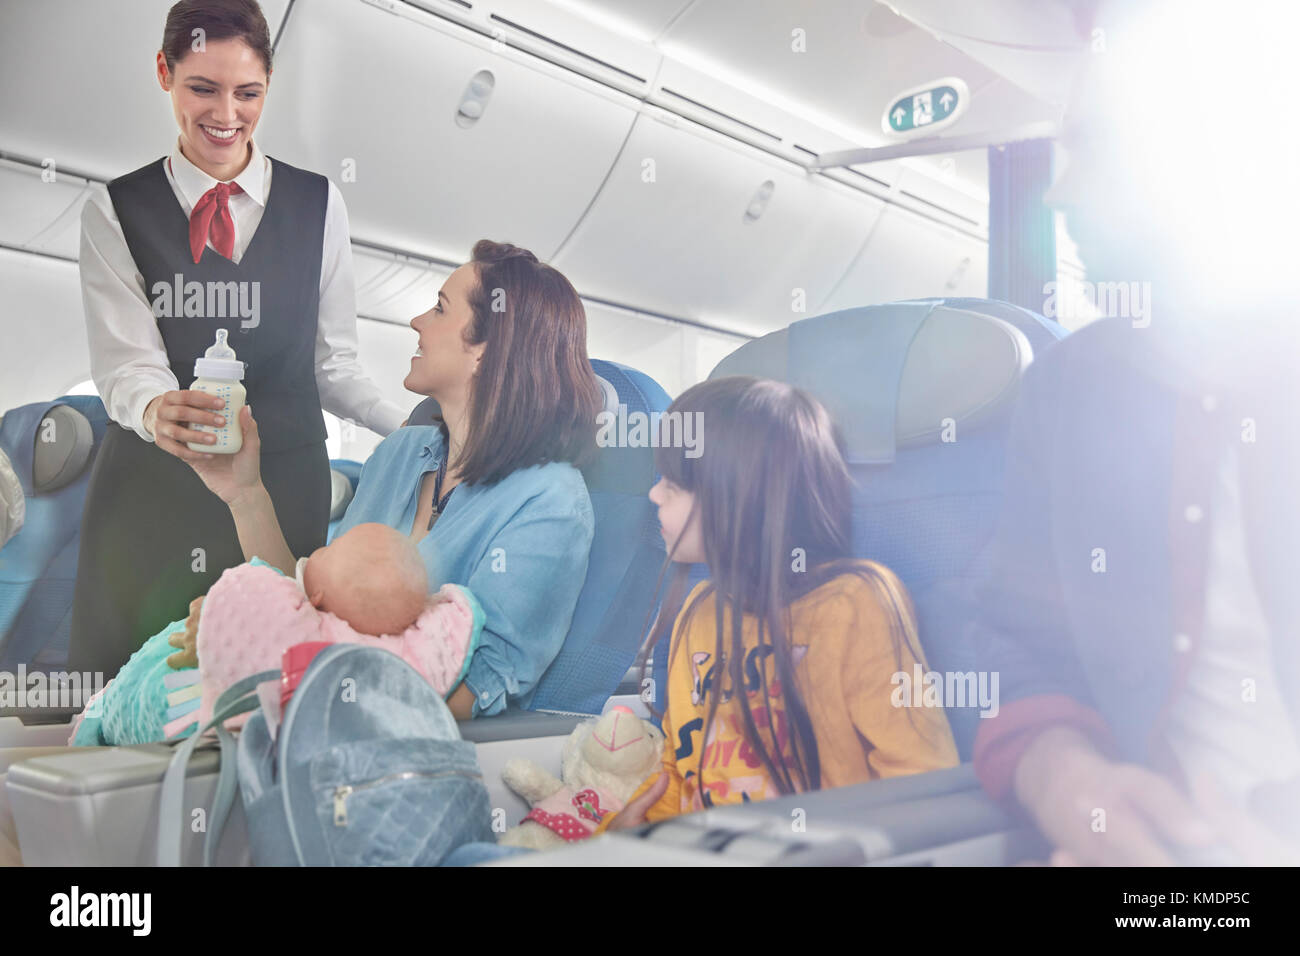 Smiling flight attendant bringing baby bottle to mother with baby on airplane - Stock Image